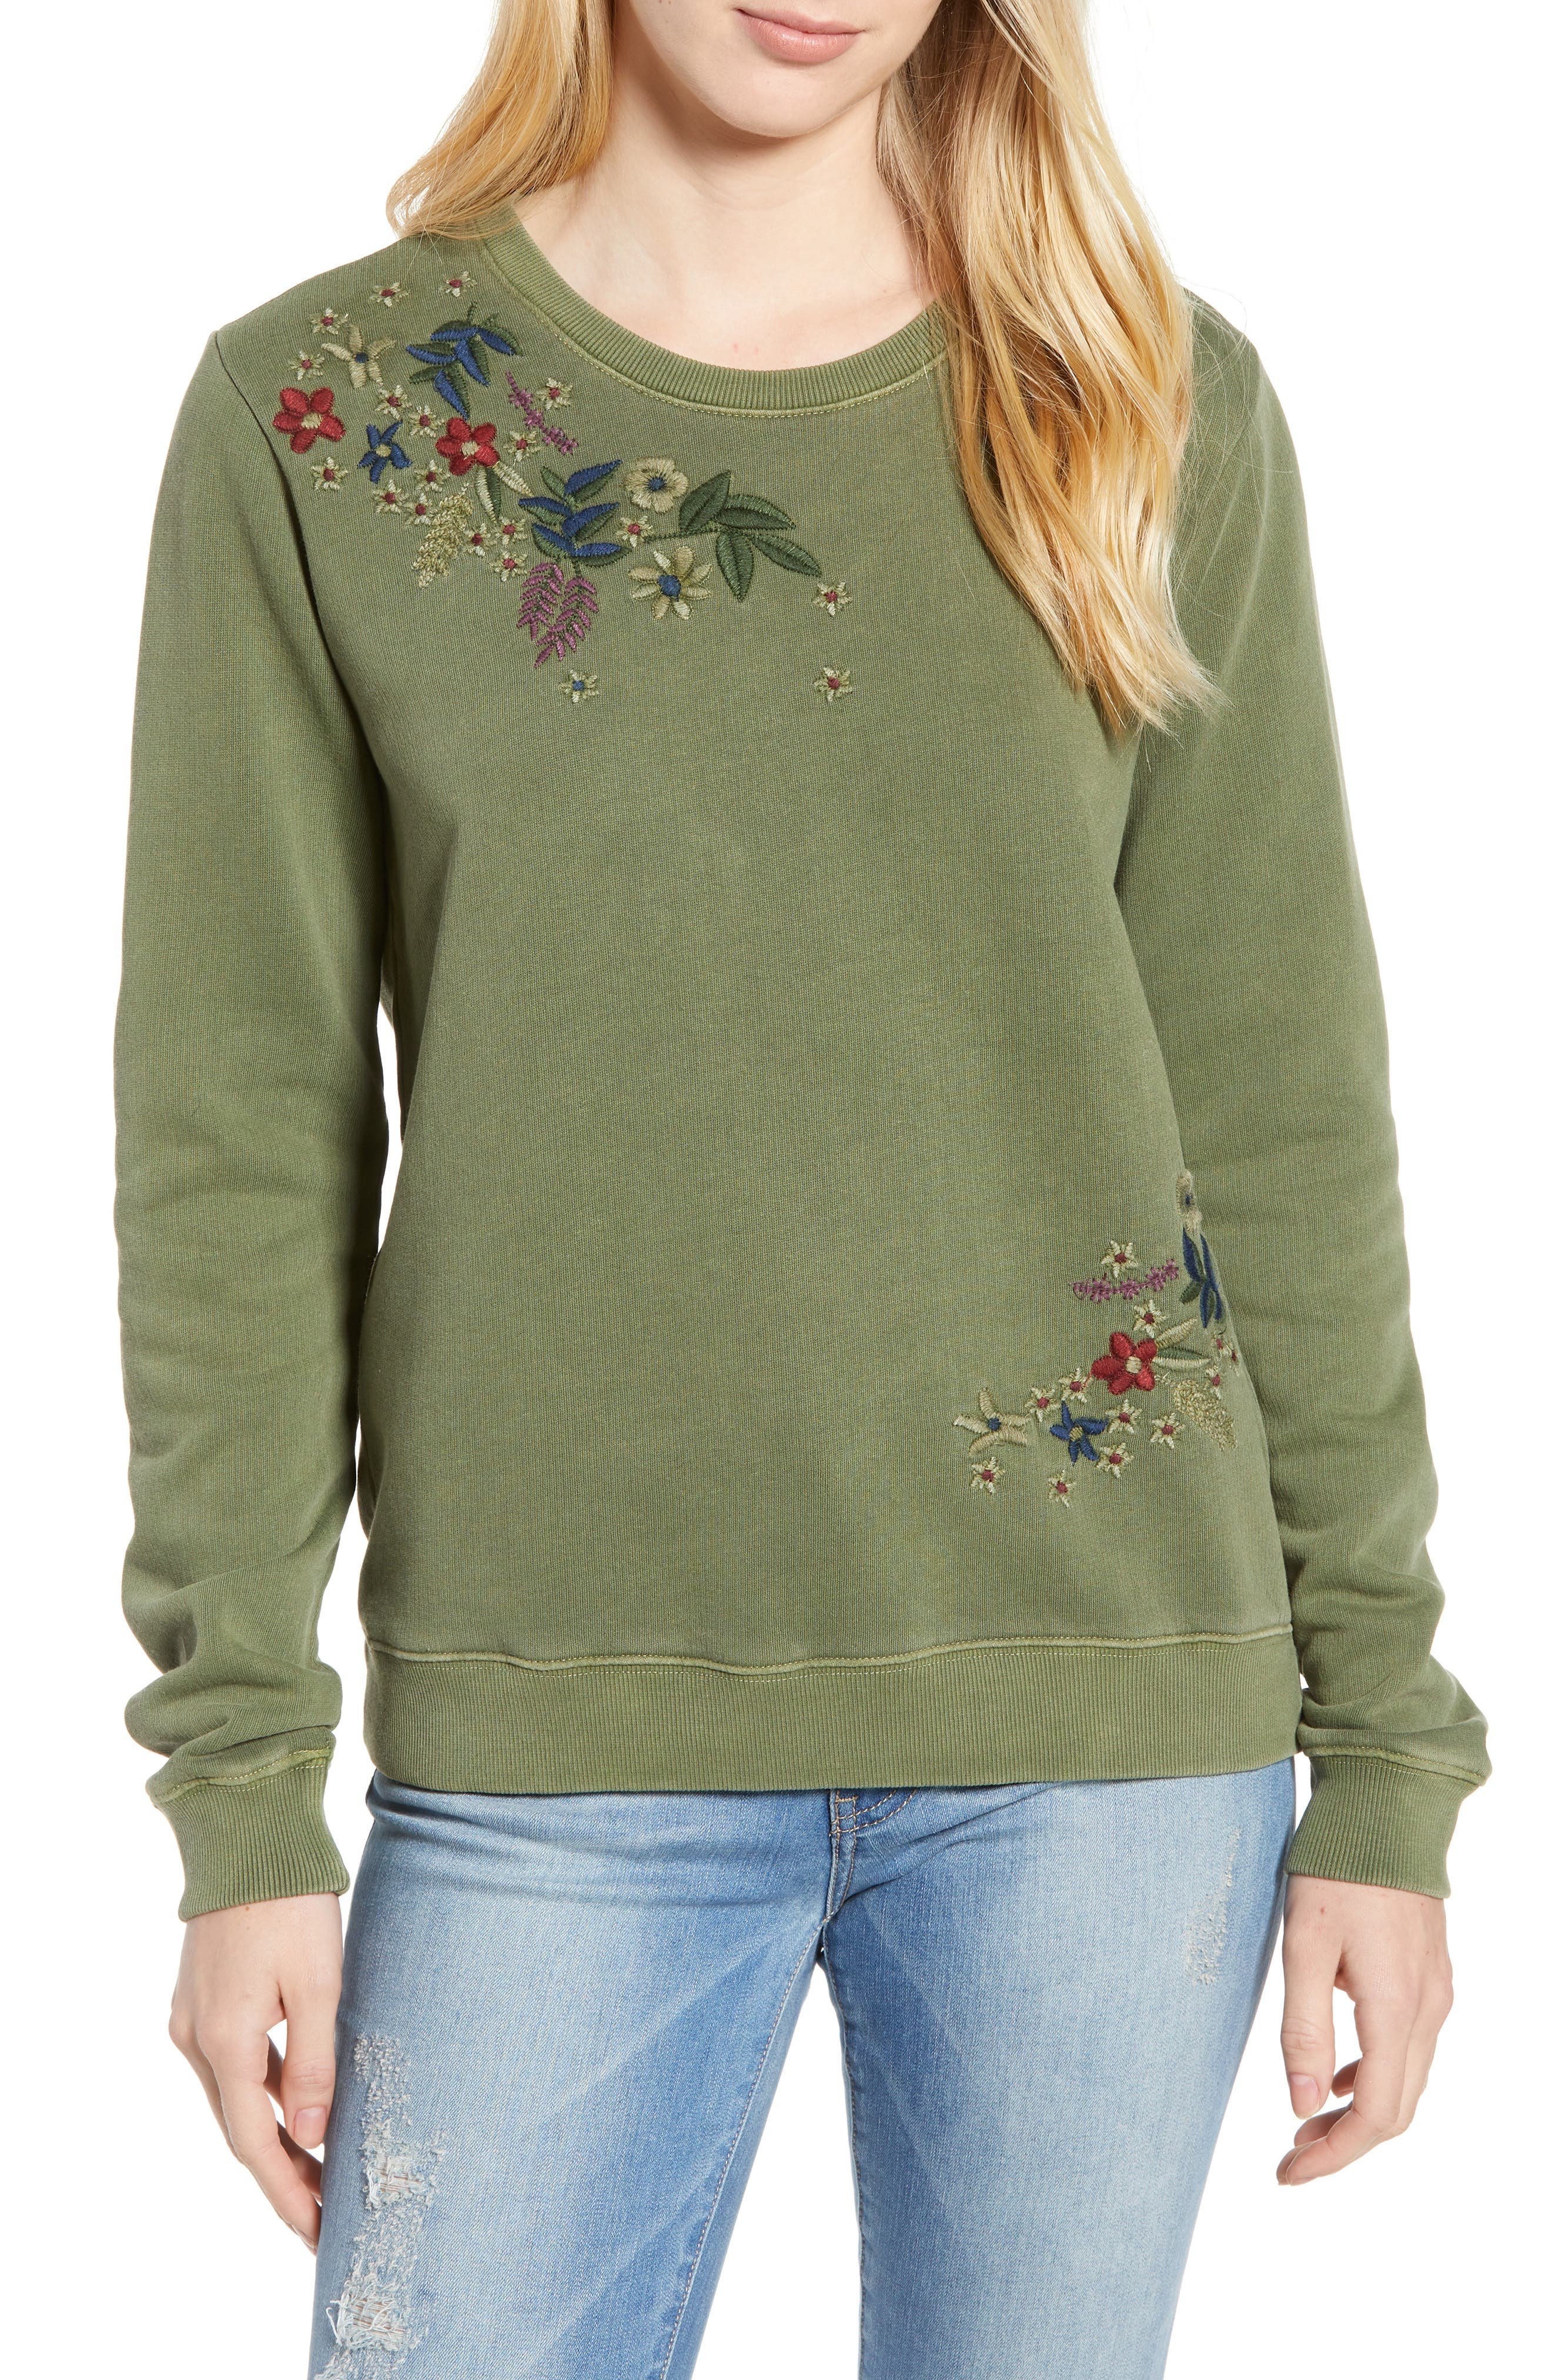 Embroidered Flowers Sweatshirt,                             Main thumbnail 1, color,                             OLIVE KNIT